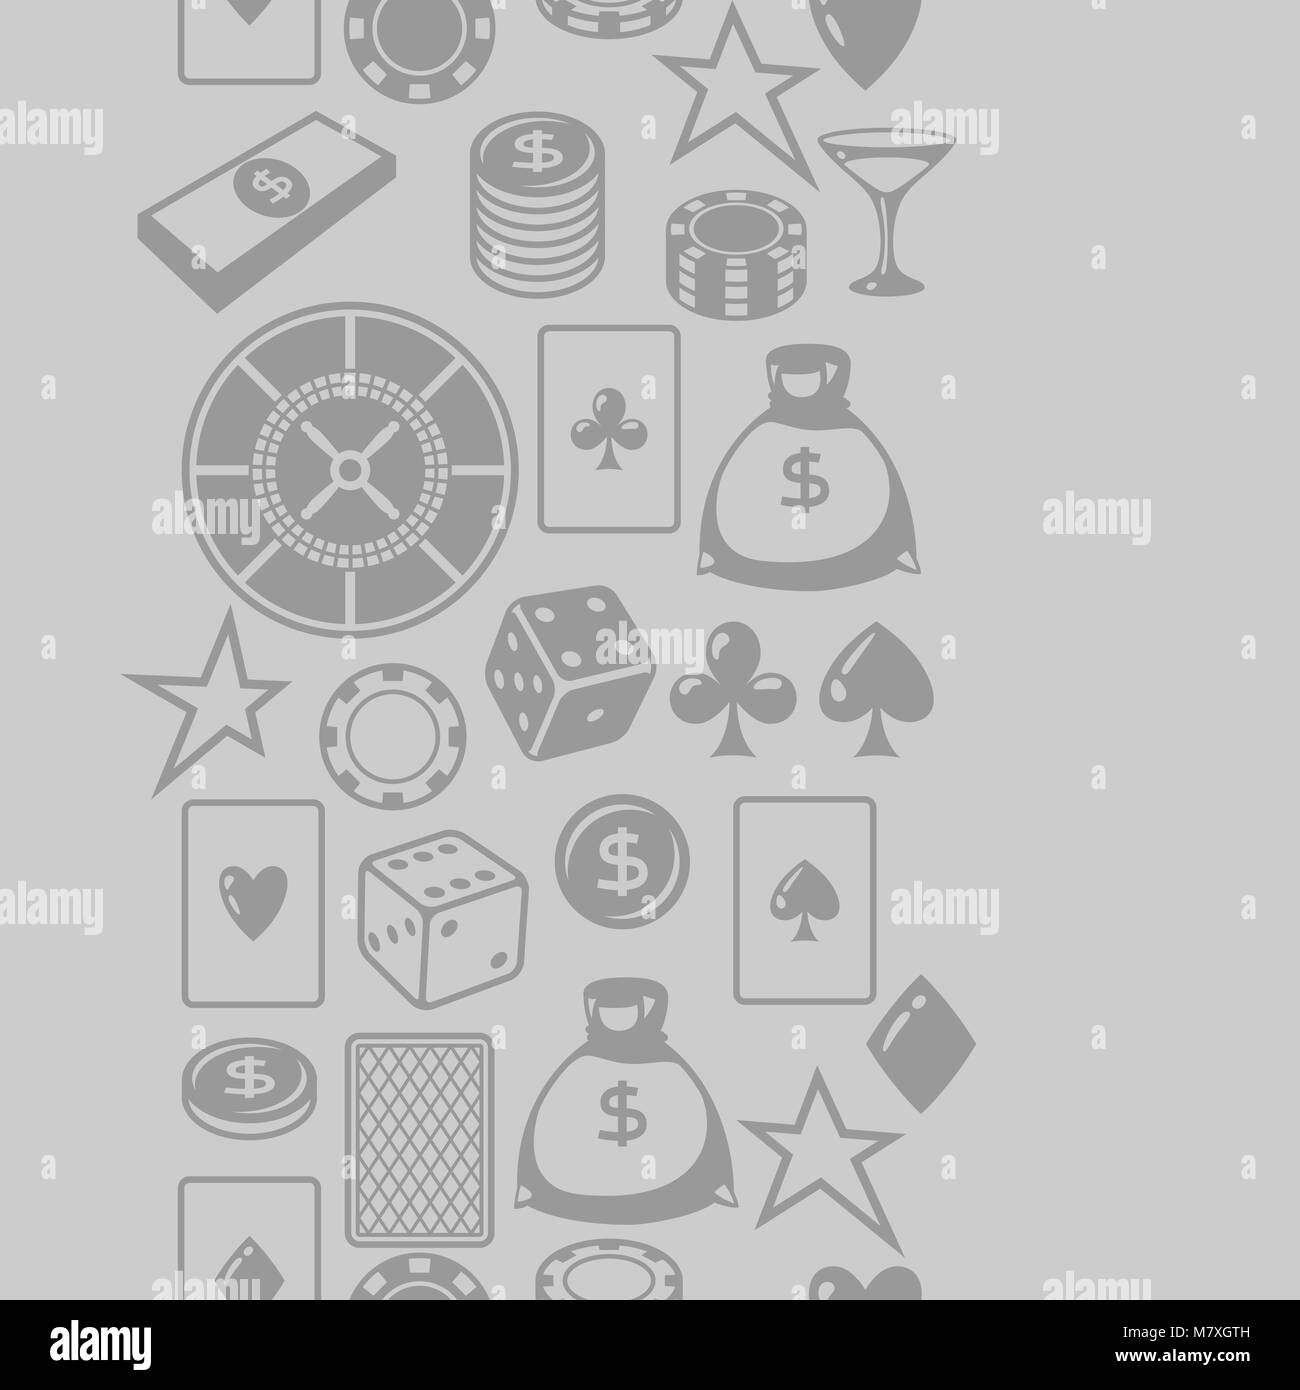 Casino gambling seamless pattern with game objects - Stock Image